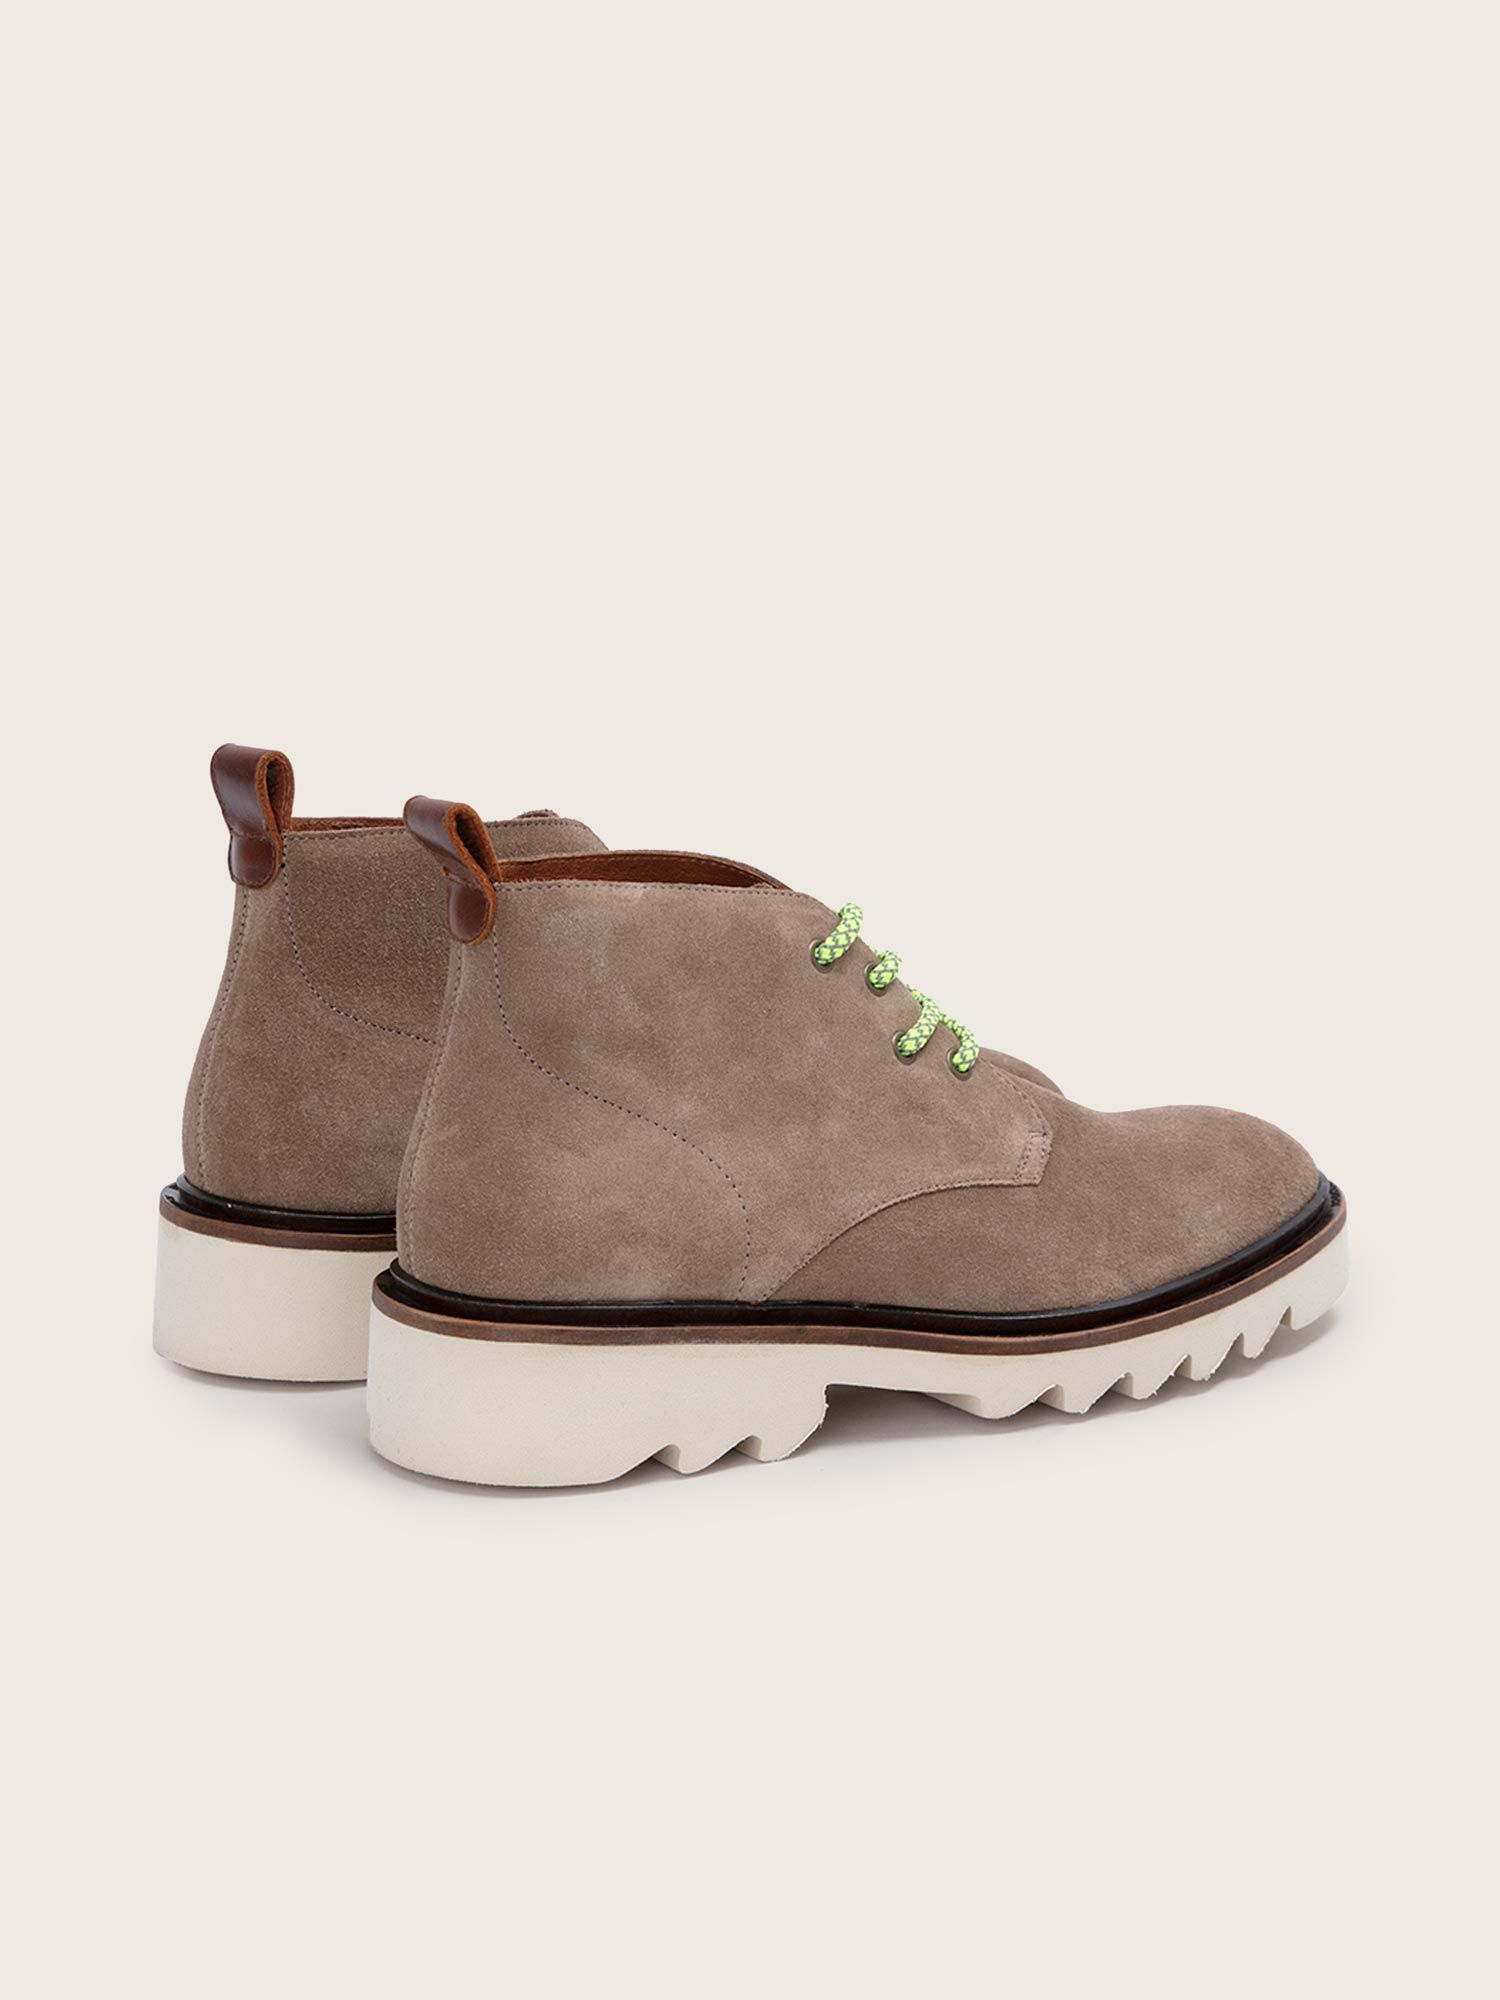 schmoove.fr BEAVER DESERT - SUEDE - TAUPE